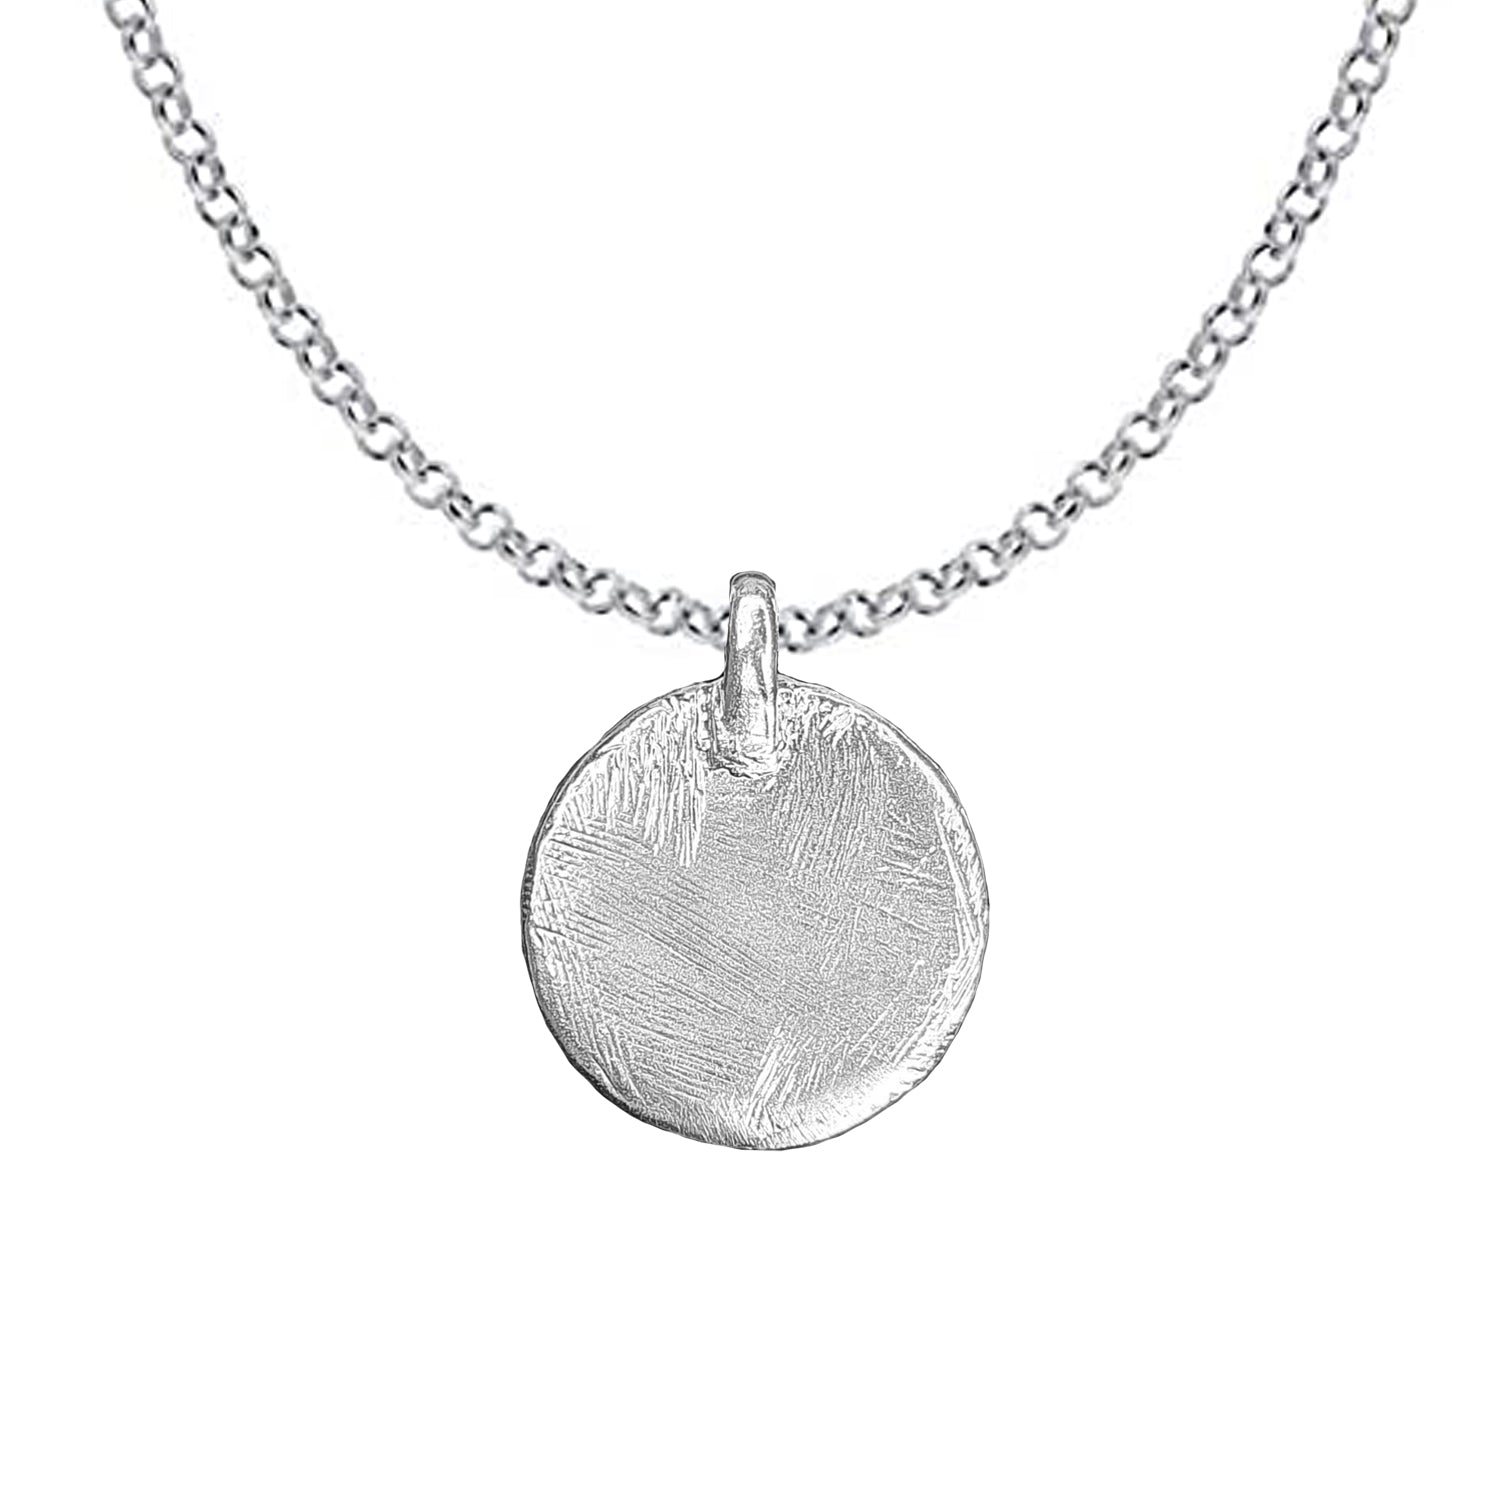 Signature Full Moon Necklace